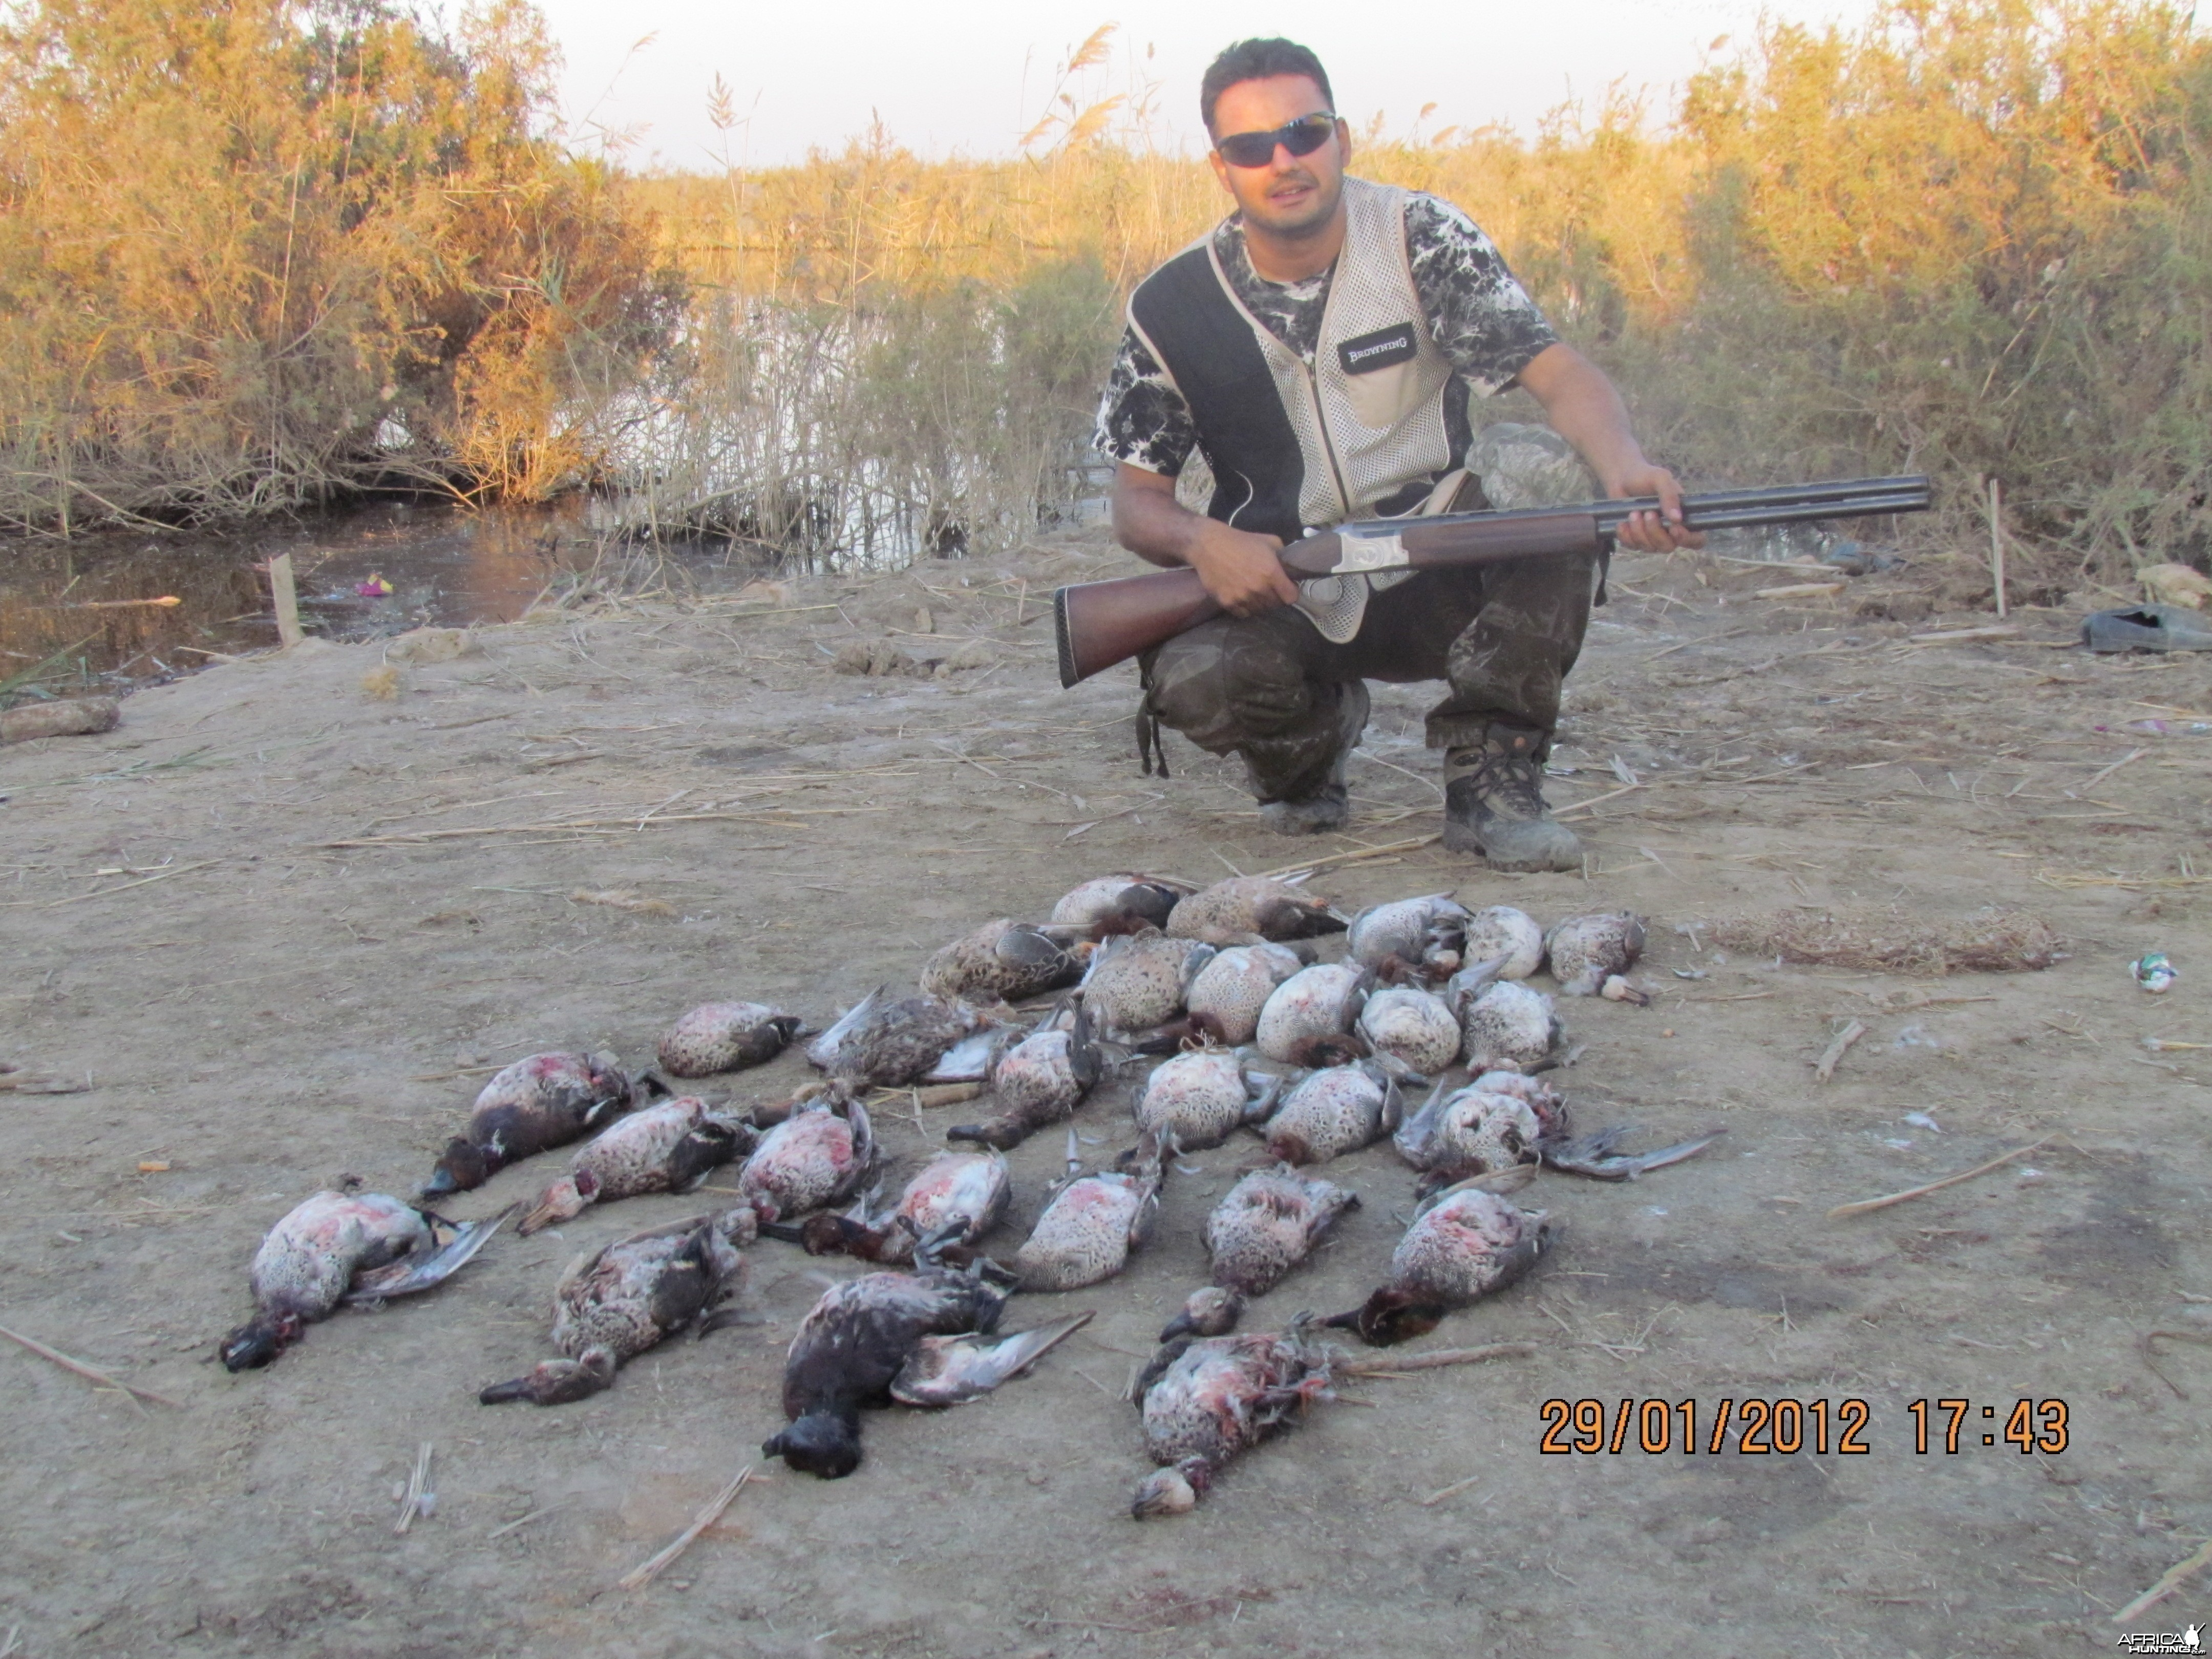 A good day of duck